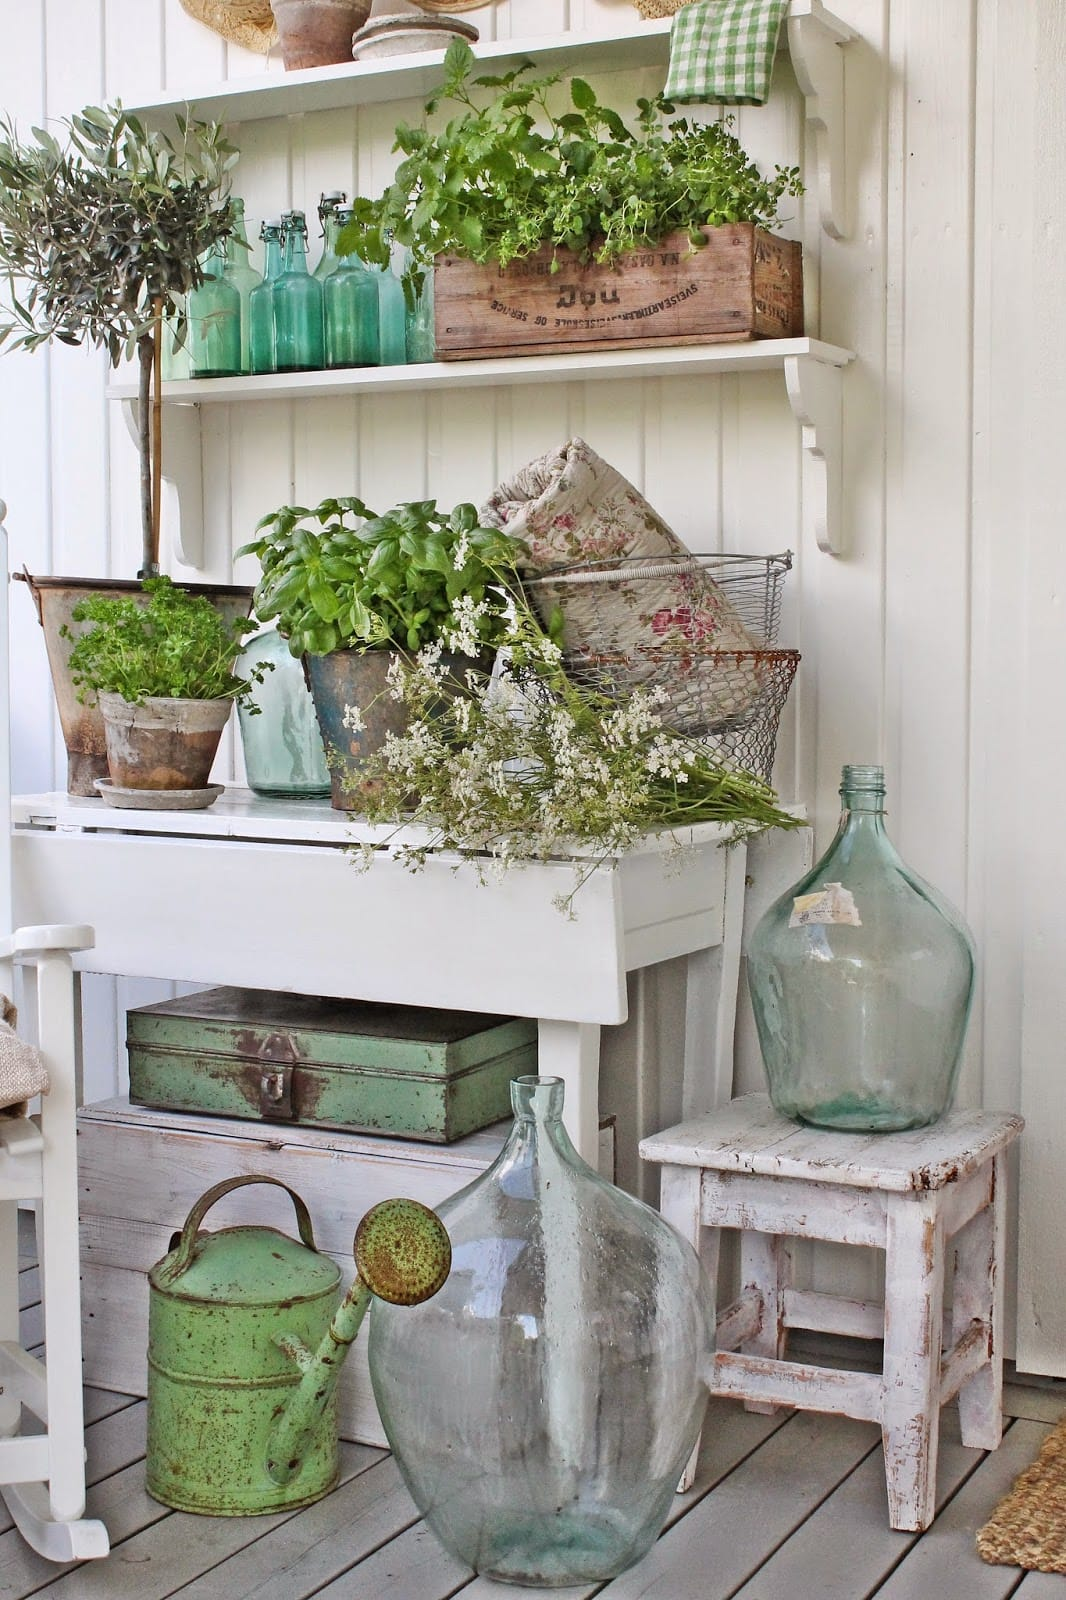 Best Vintage Porch Decor Ideas #21